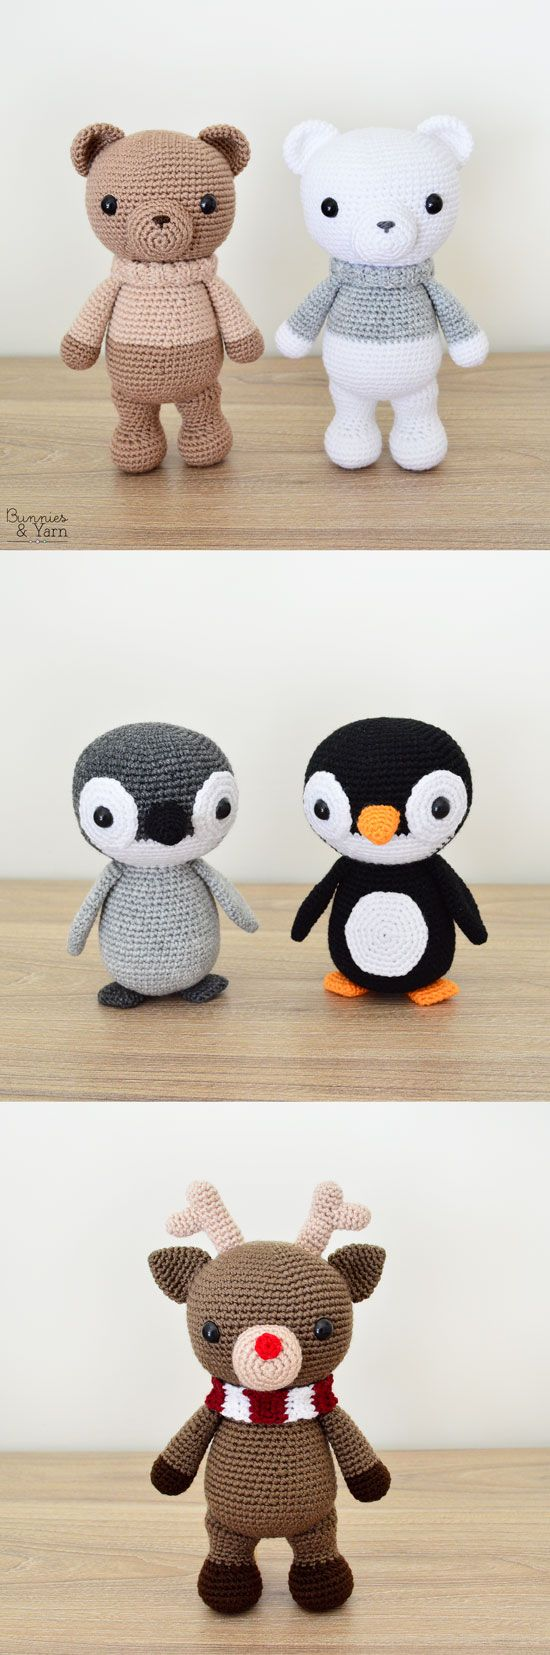 THREE CROCHET PATTERNS in English - Xander the Bear, Yves the Penguin and Zach the Reindeer - Amigurumi Toy Animal - Instant Pdf Download #amigurumi